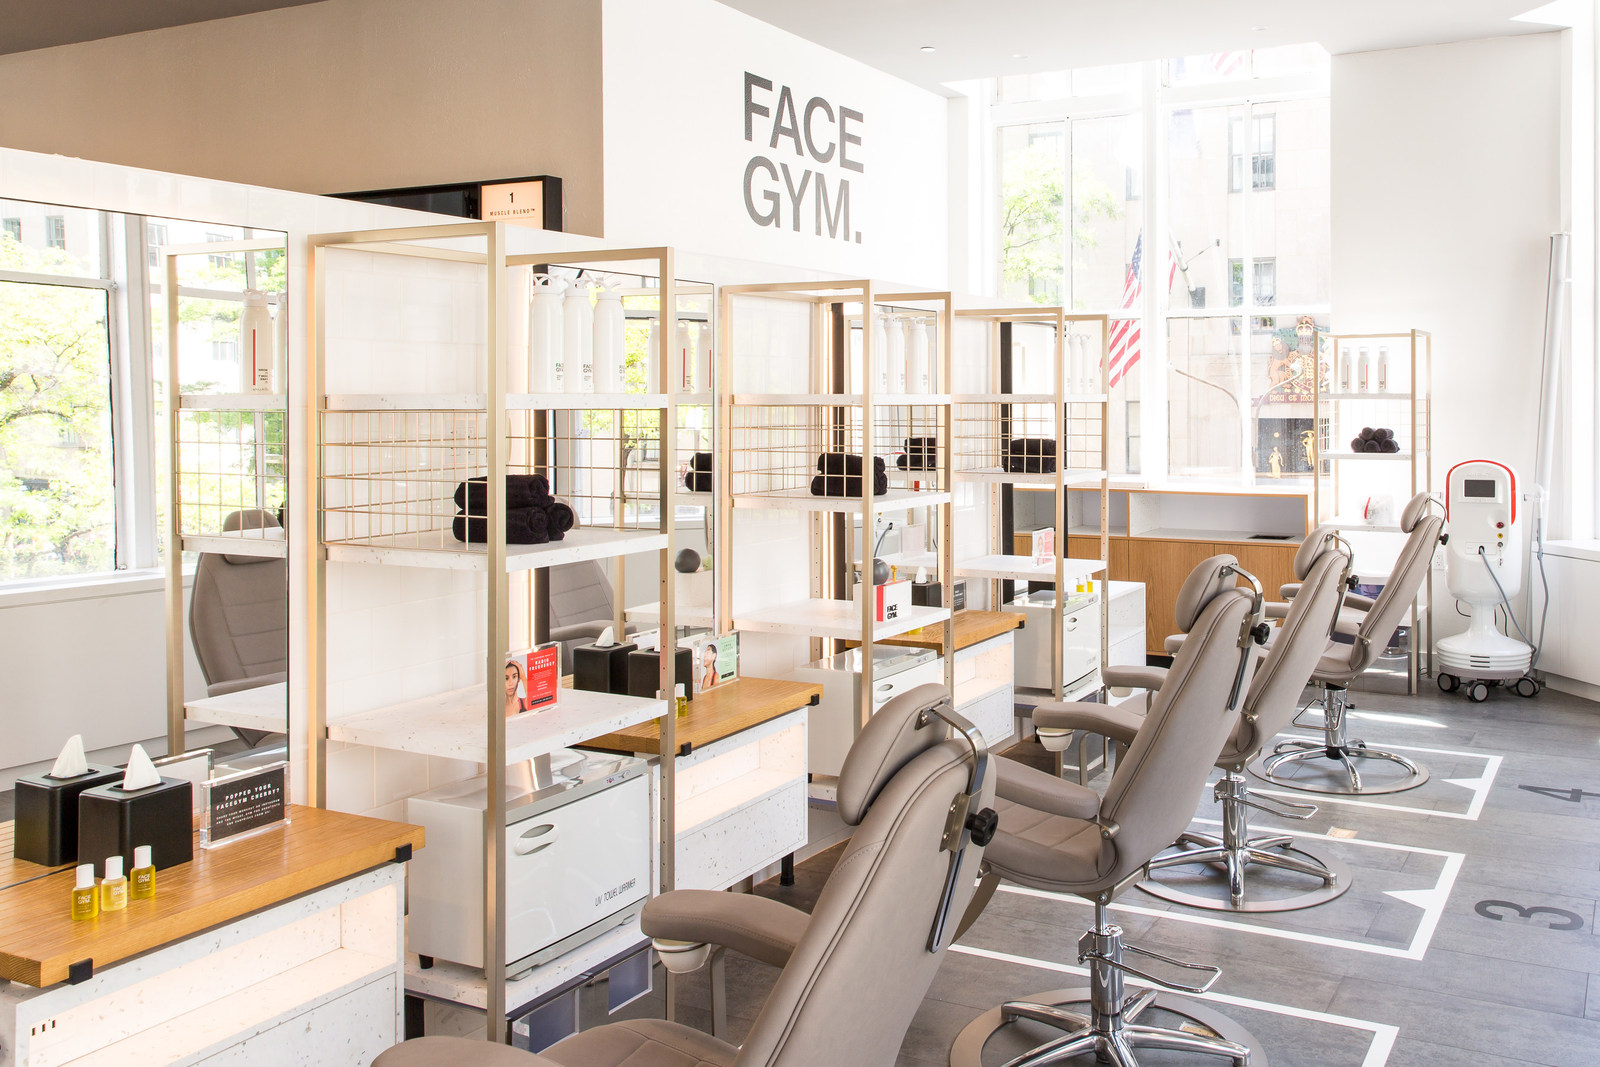 Saks Fifth Avenue FaceGym